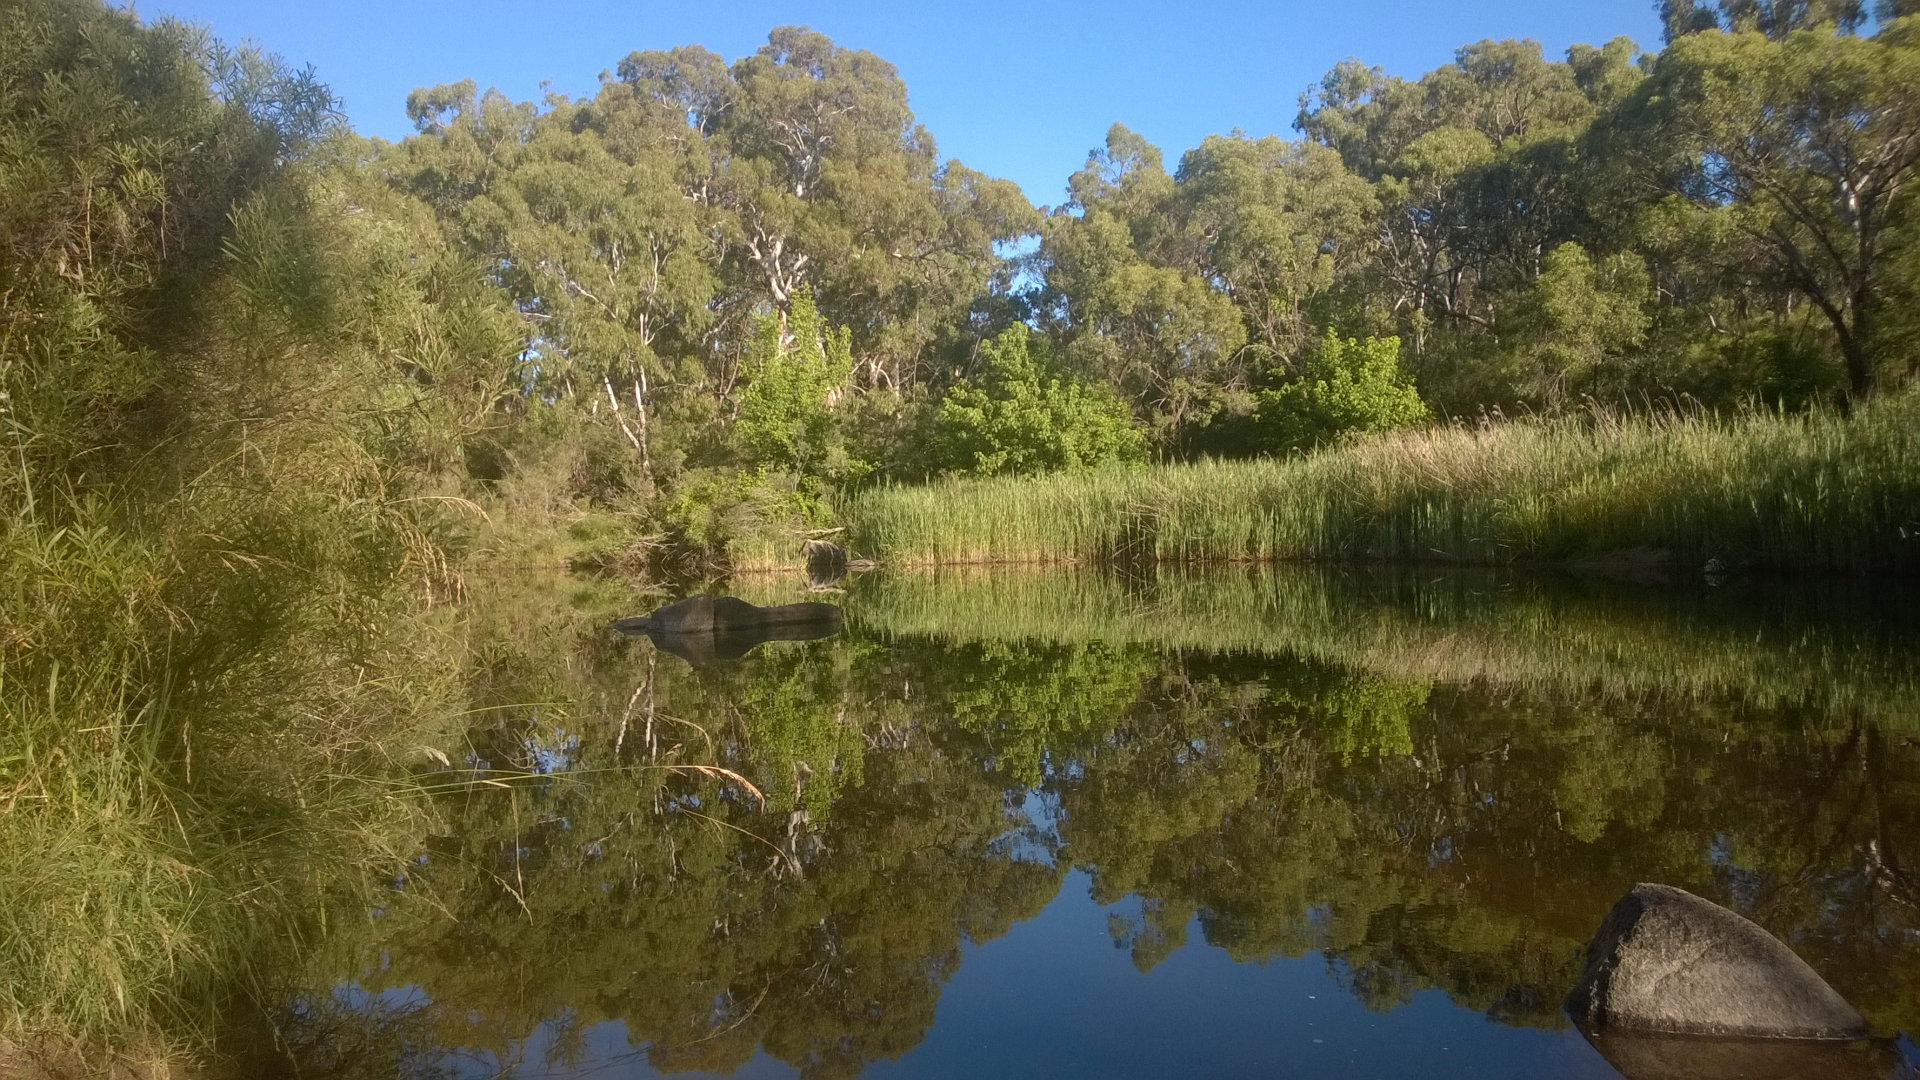 Creek at the camp ground at Wooldridge Fossicking Reserve, about 6kms out of Uralla, where you can fossick for gold and gems, and free camp